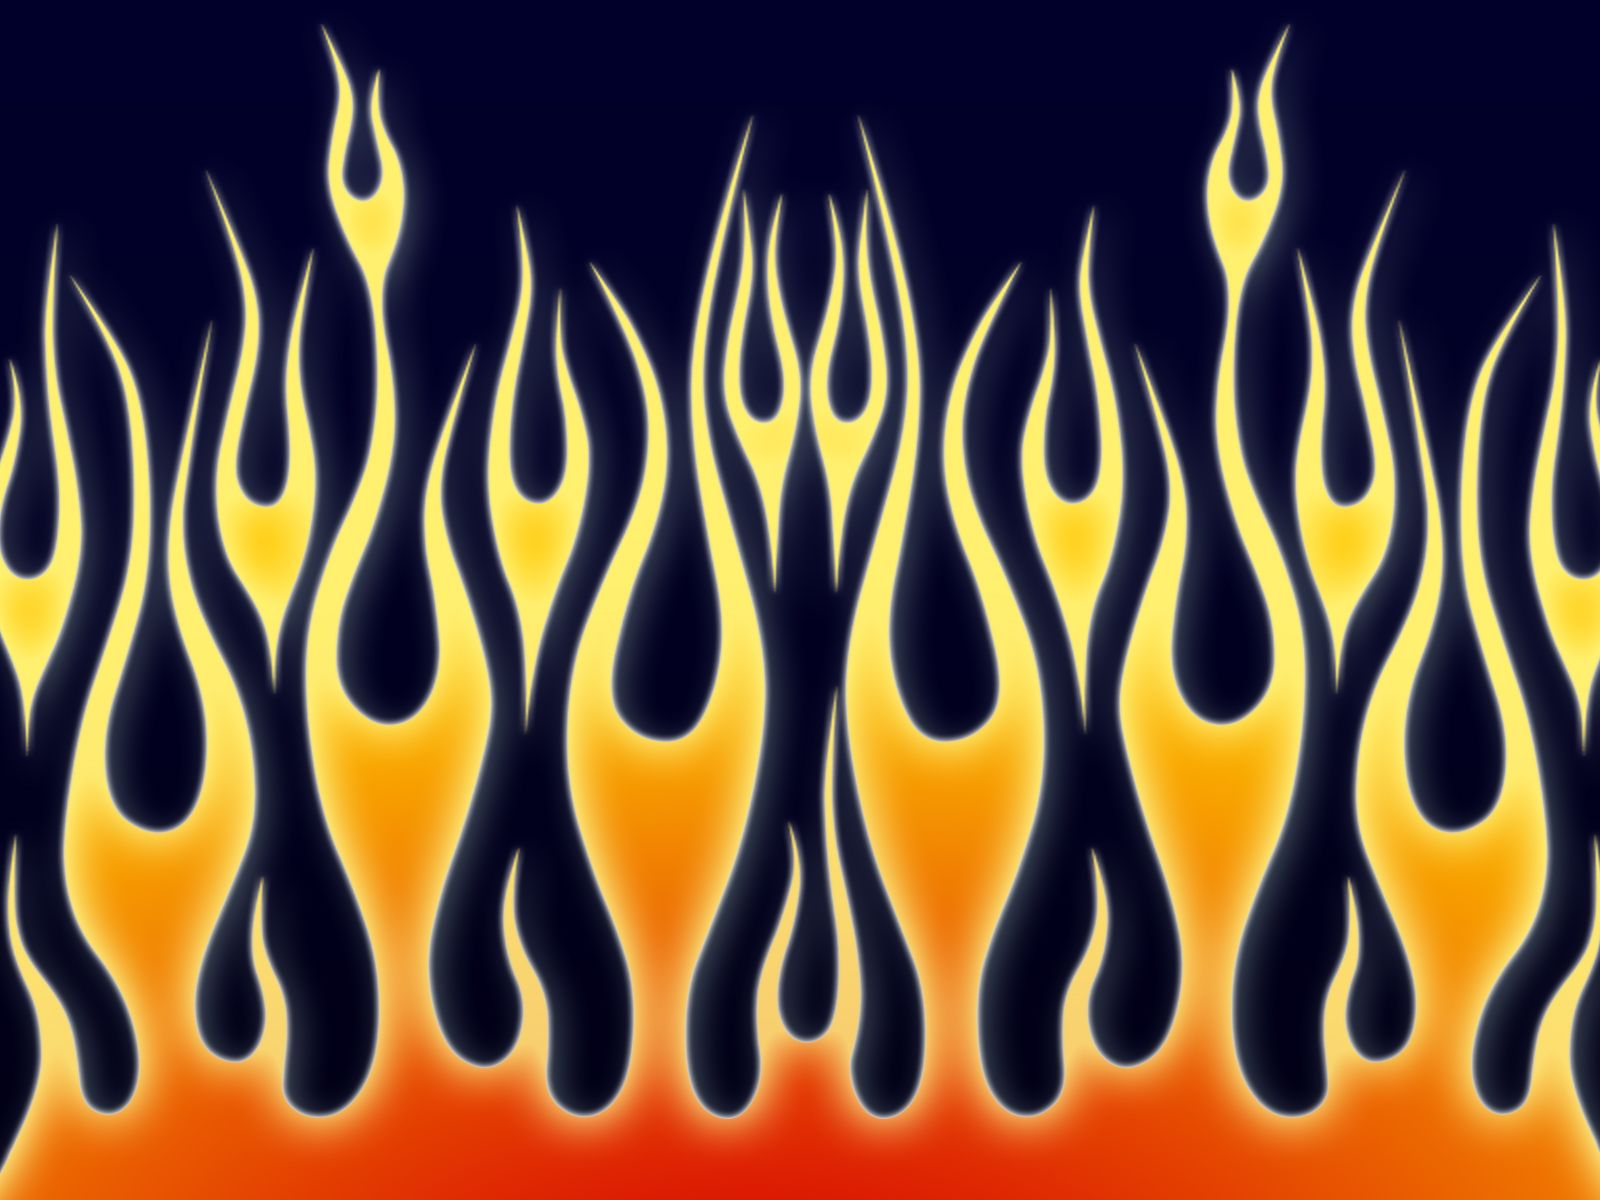 Flames white background border flame border w pictures to pin on - Hot Rod Flames Hot Rod Flames Clip Art Pictures